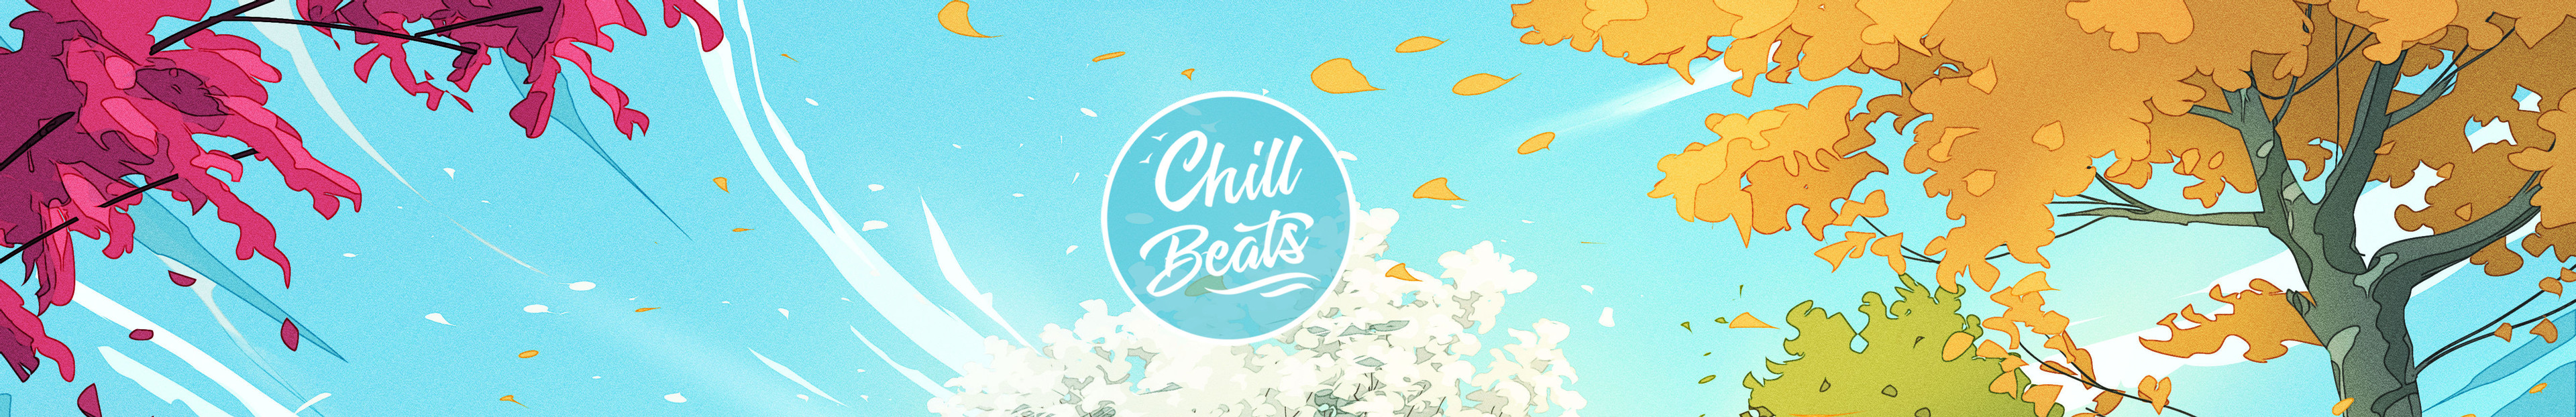 Cover Illustrations for Chill Beats Records and the various music artists in collaboration.